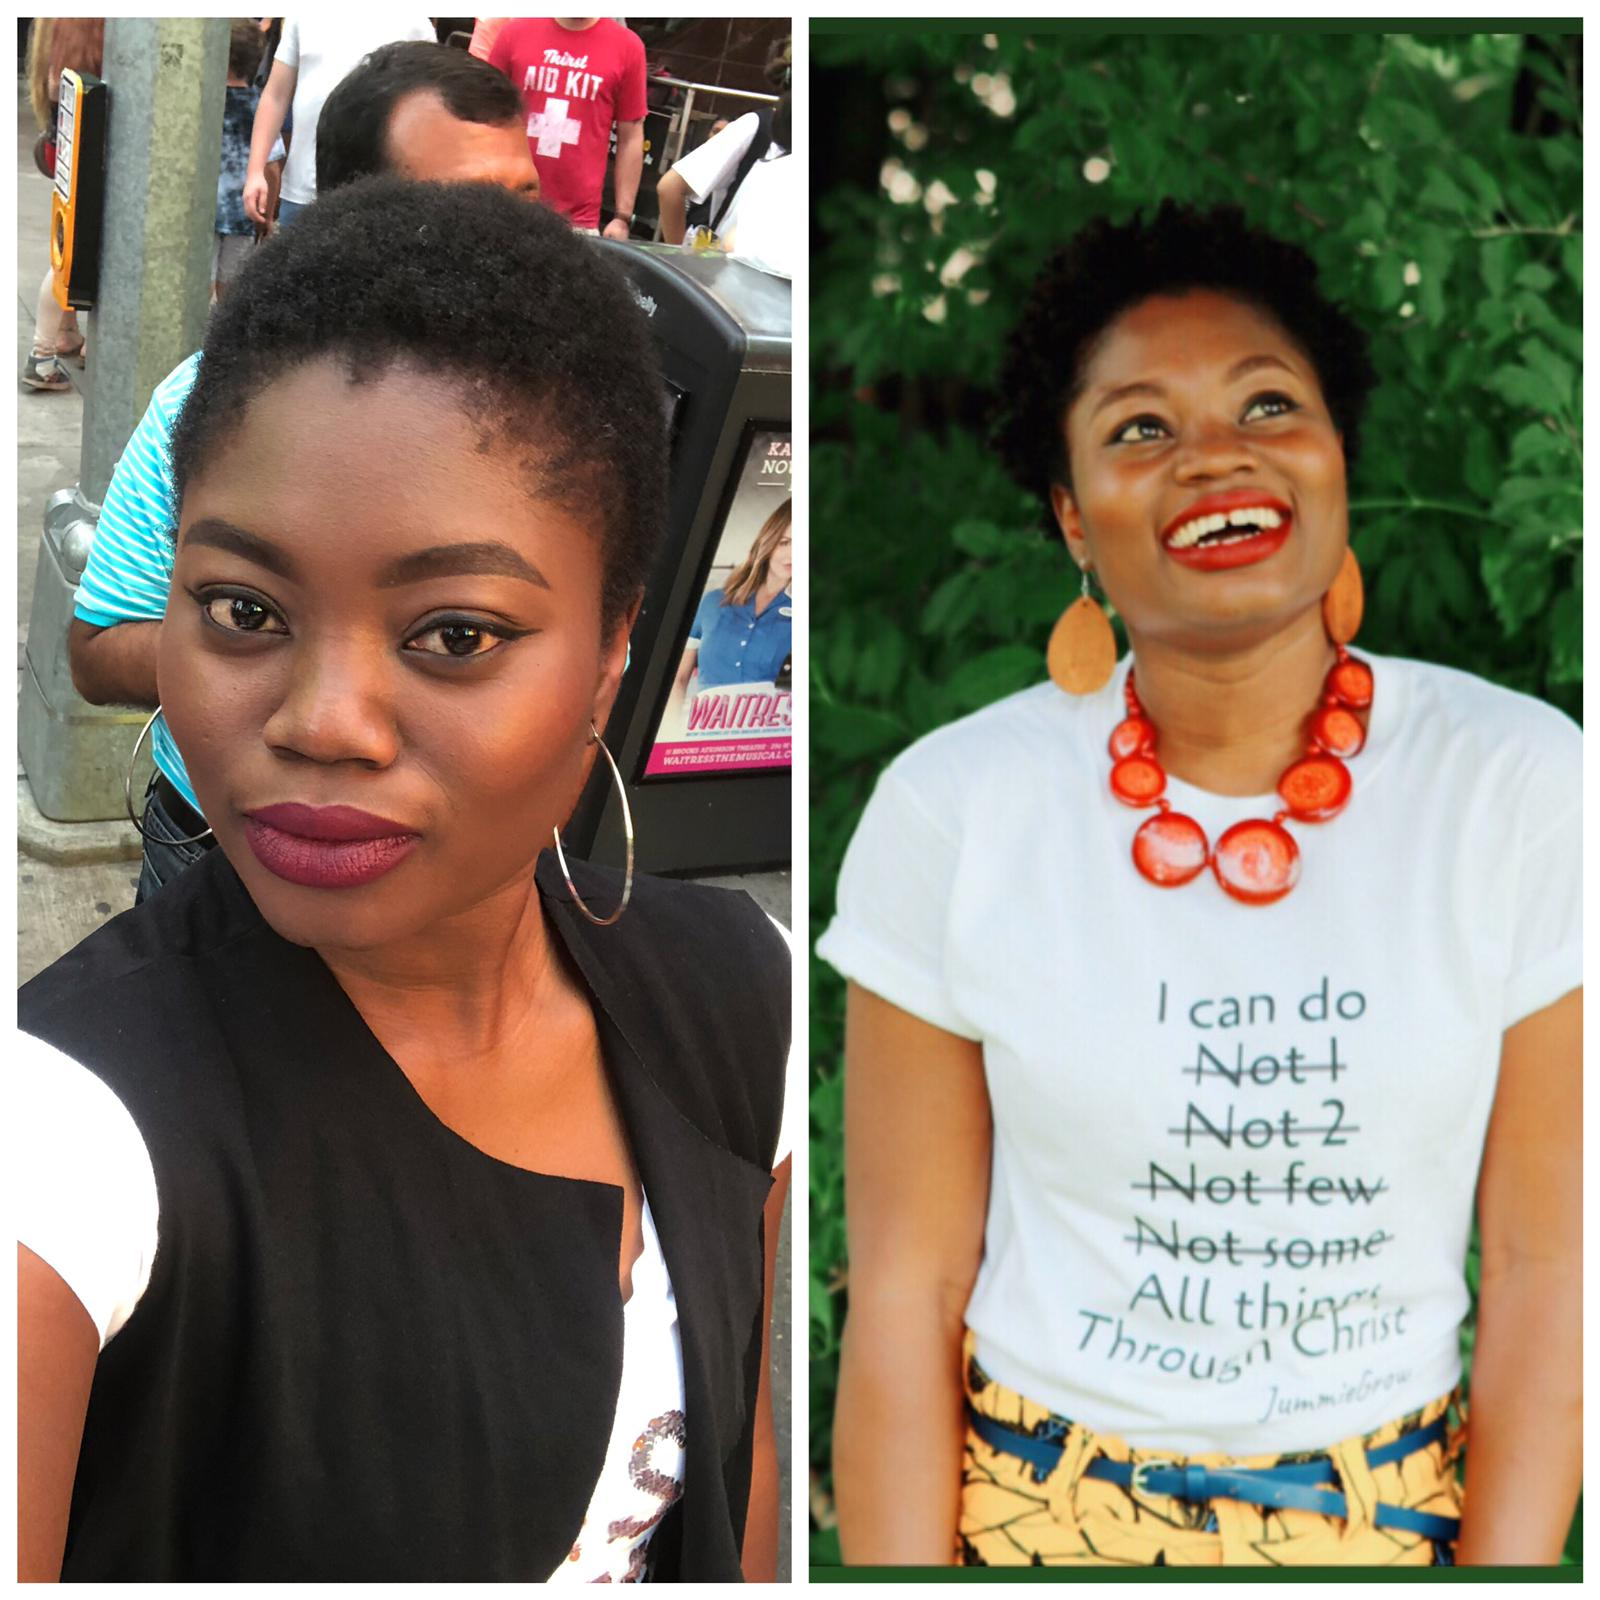 Jummie's growth 1 year after she bigchopped due to postpartum hair loss